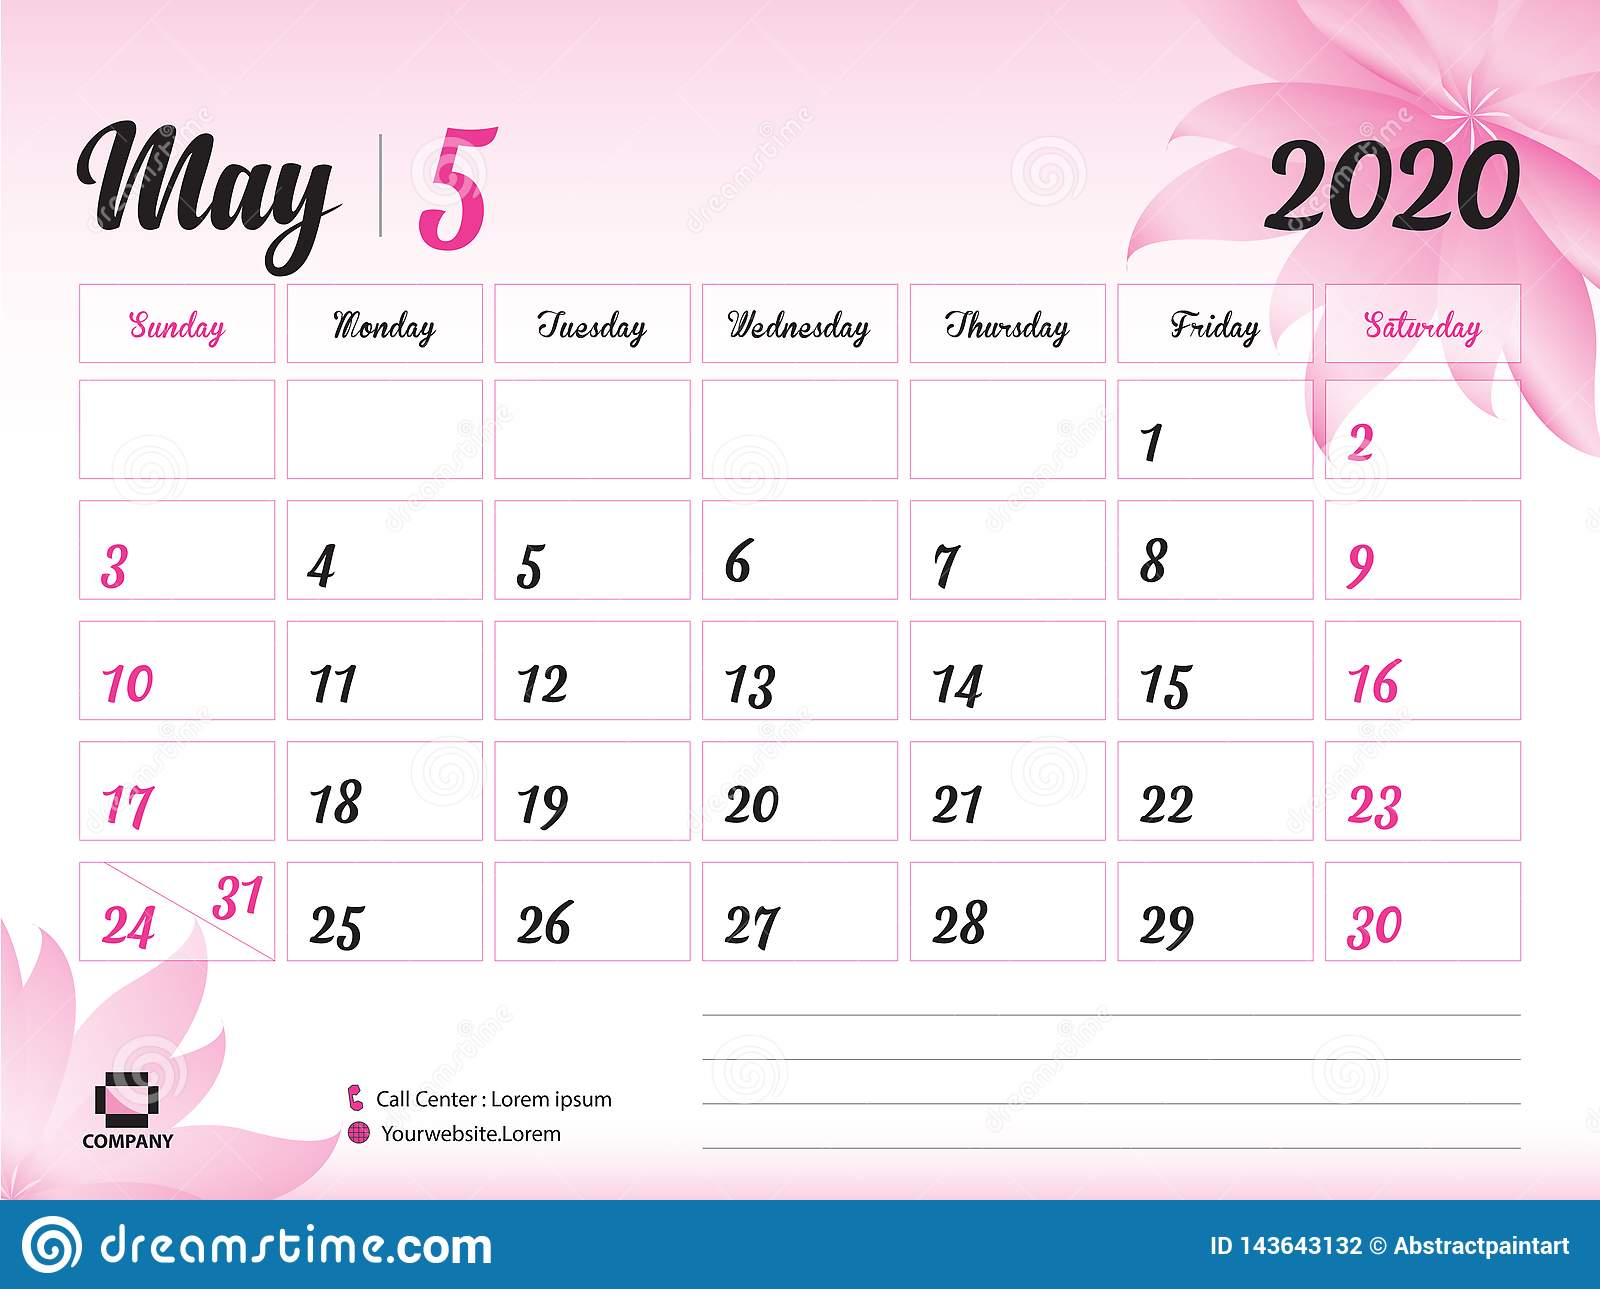 May 2020 Year Template, Calendar 2020 Vector, Desk Calendar